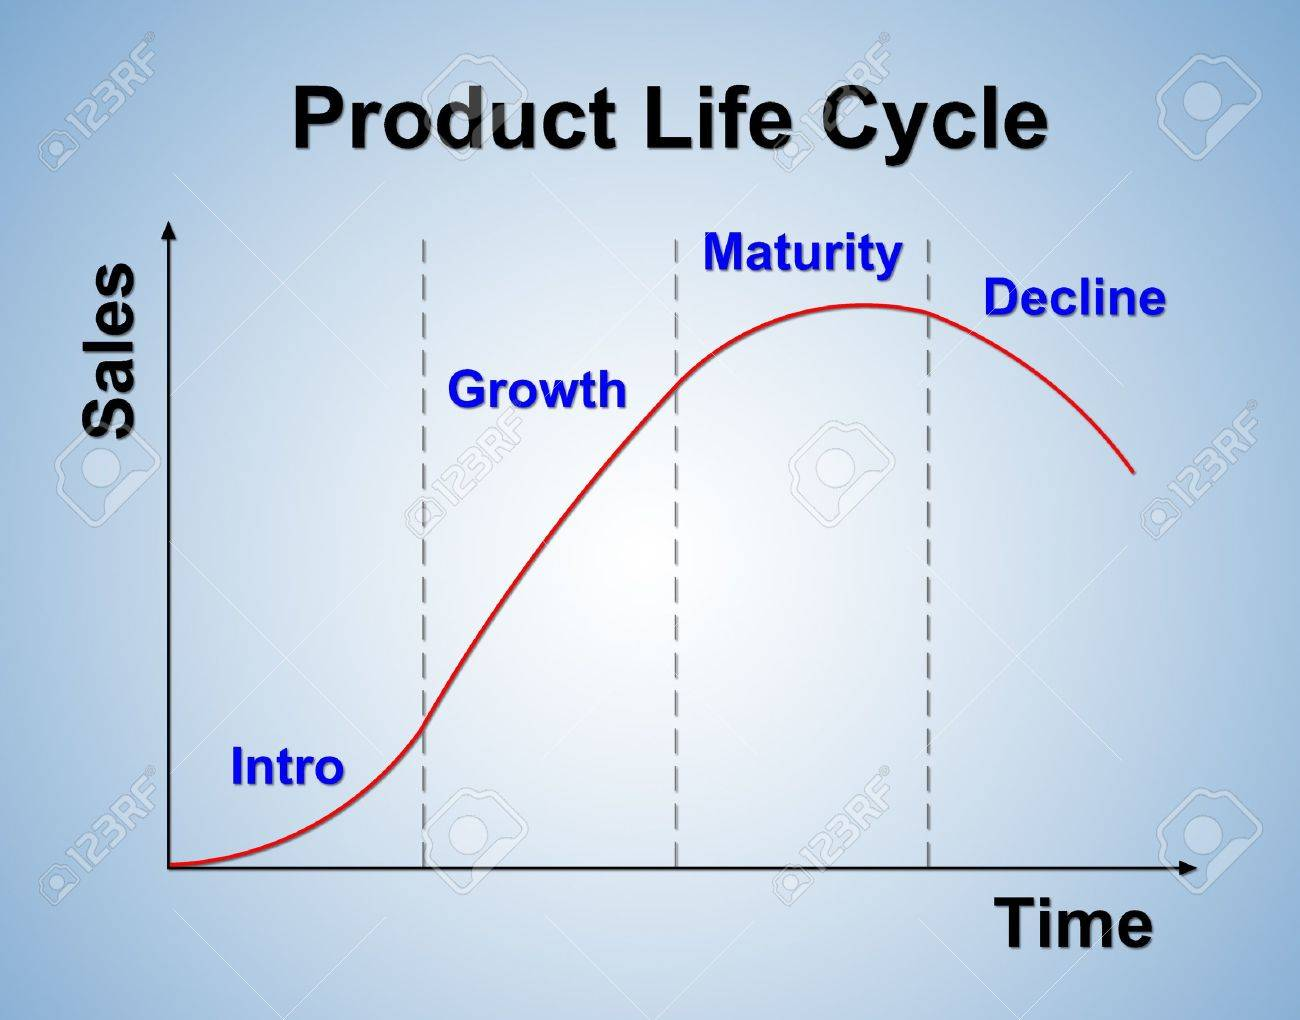 Product life cycle chart marketing concept stock photo picture product life cycle chart marketing concept stock photo 13767899 ccuart Choice Image